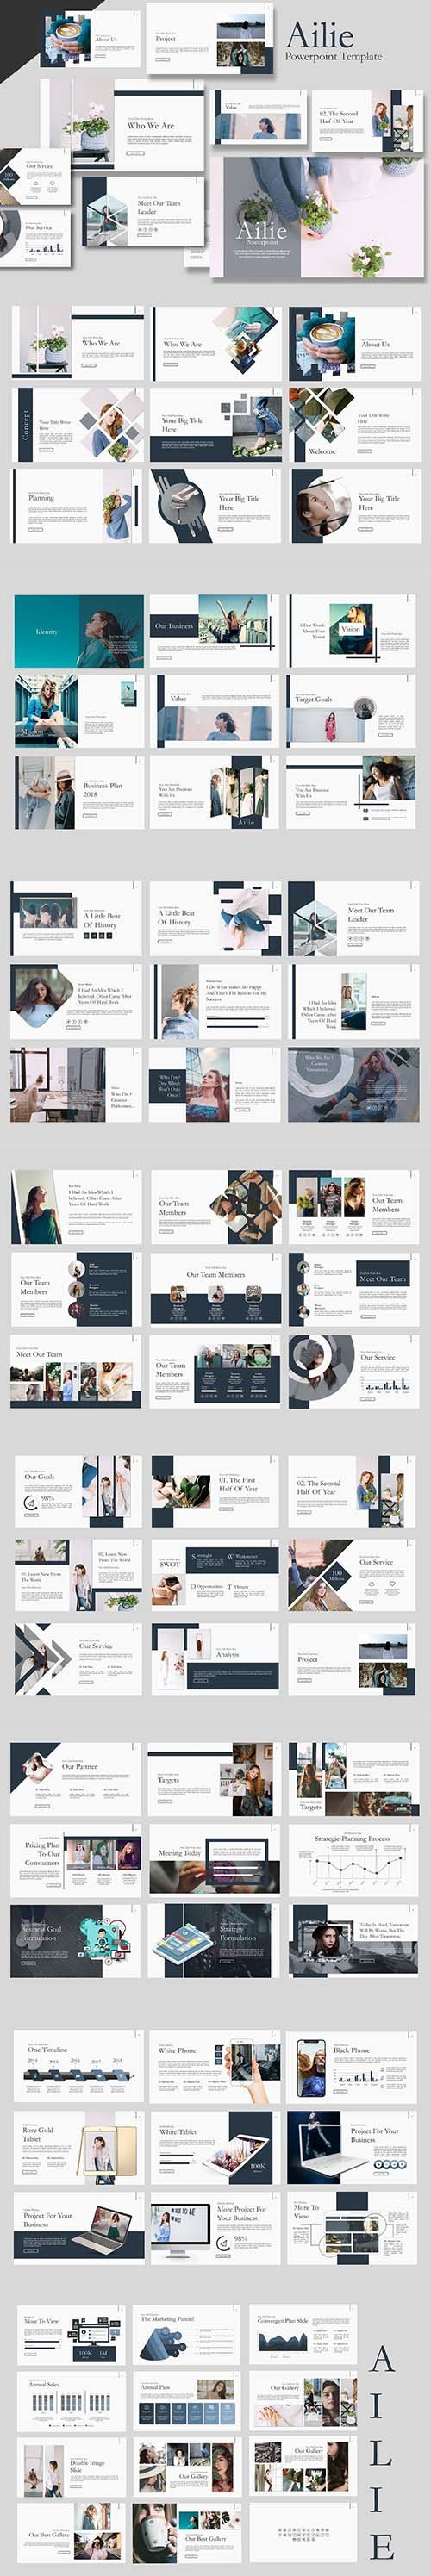 Ailie Powerpoint Template